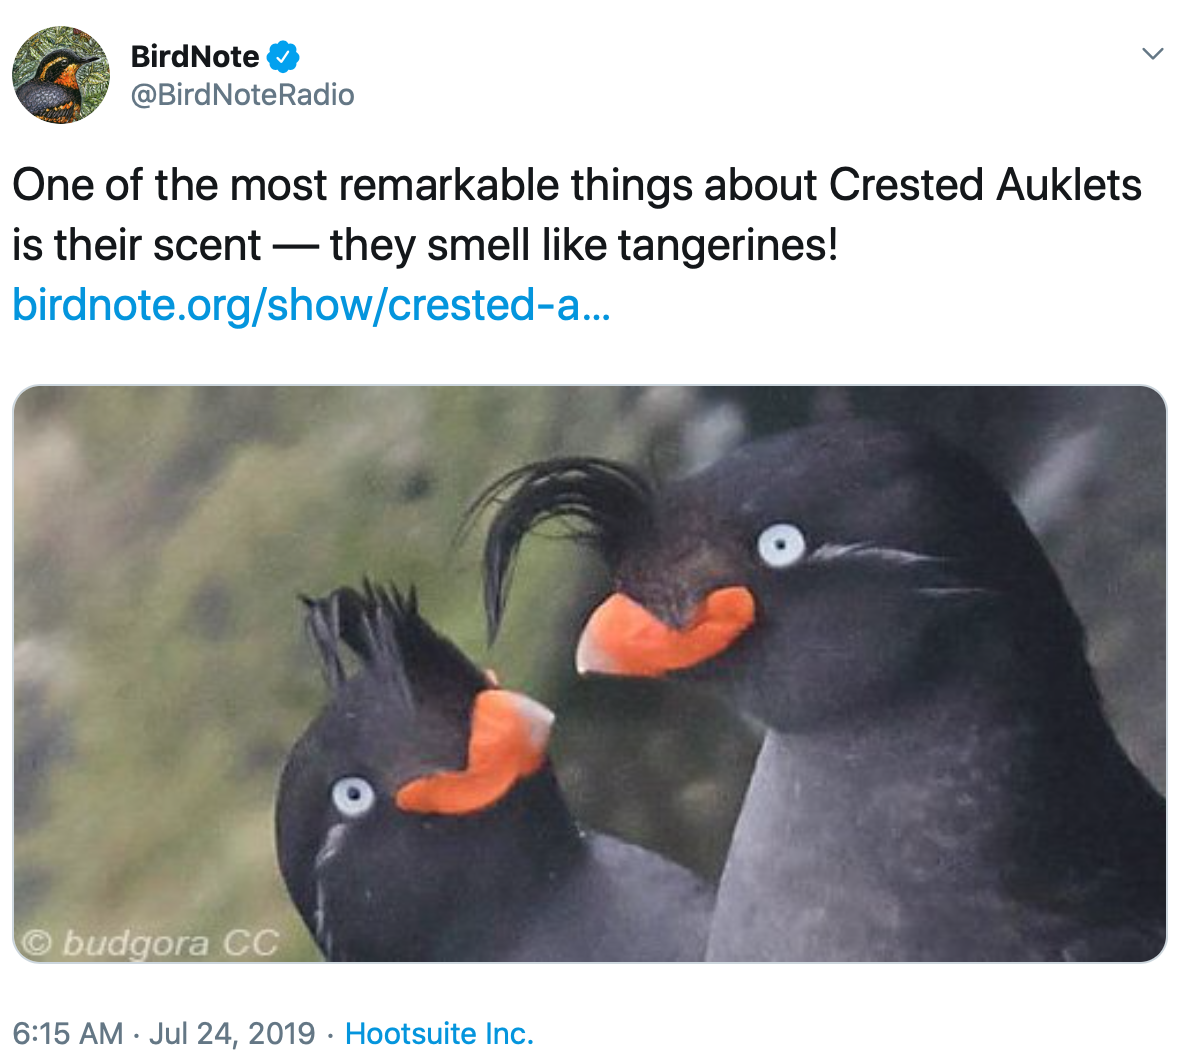 A pair of crested auklets